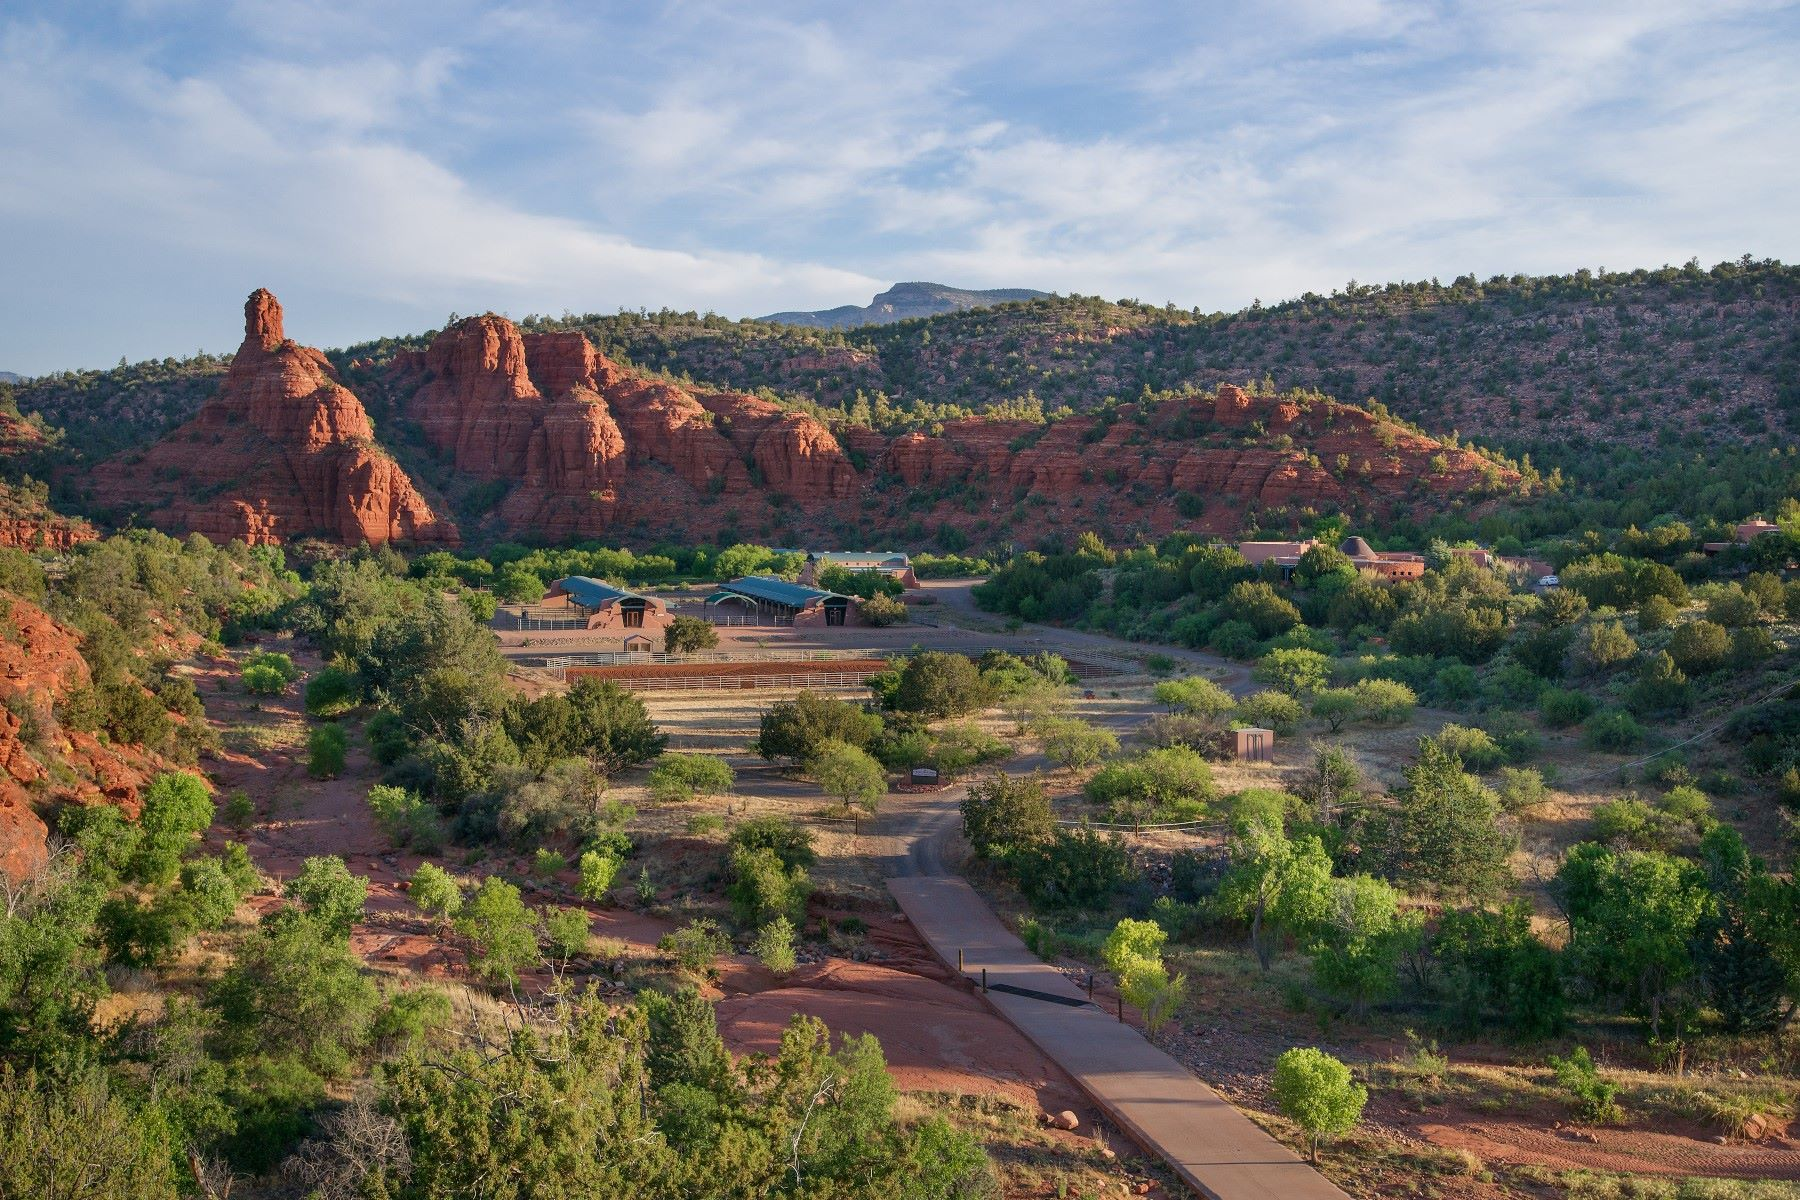 Land for Sale at One-of-a-kind property - largest undeveloped privately owned parcels in Sedona 6625 W State Route 89A -- 0 Sedona, Arizona, 86336 United States